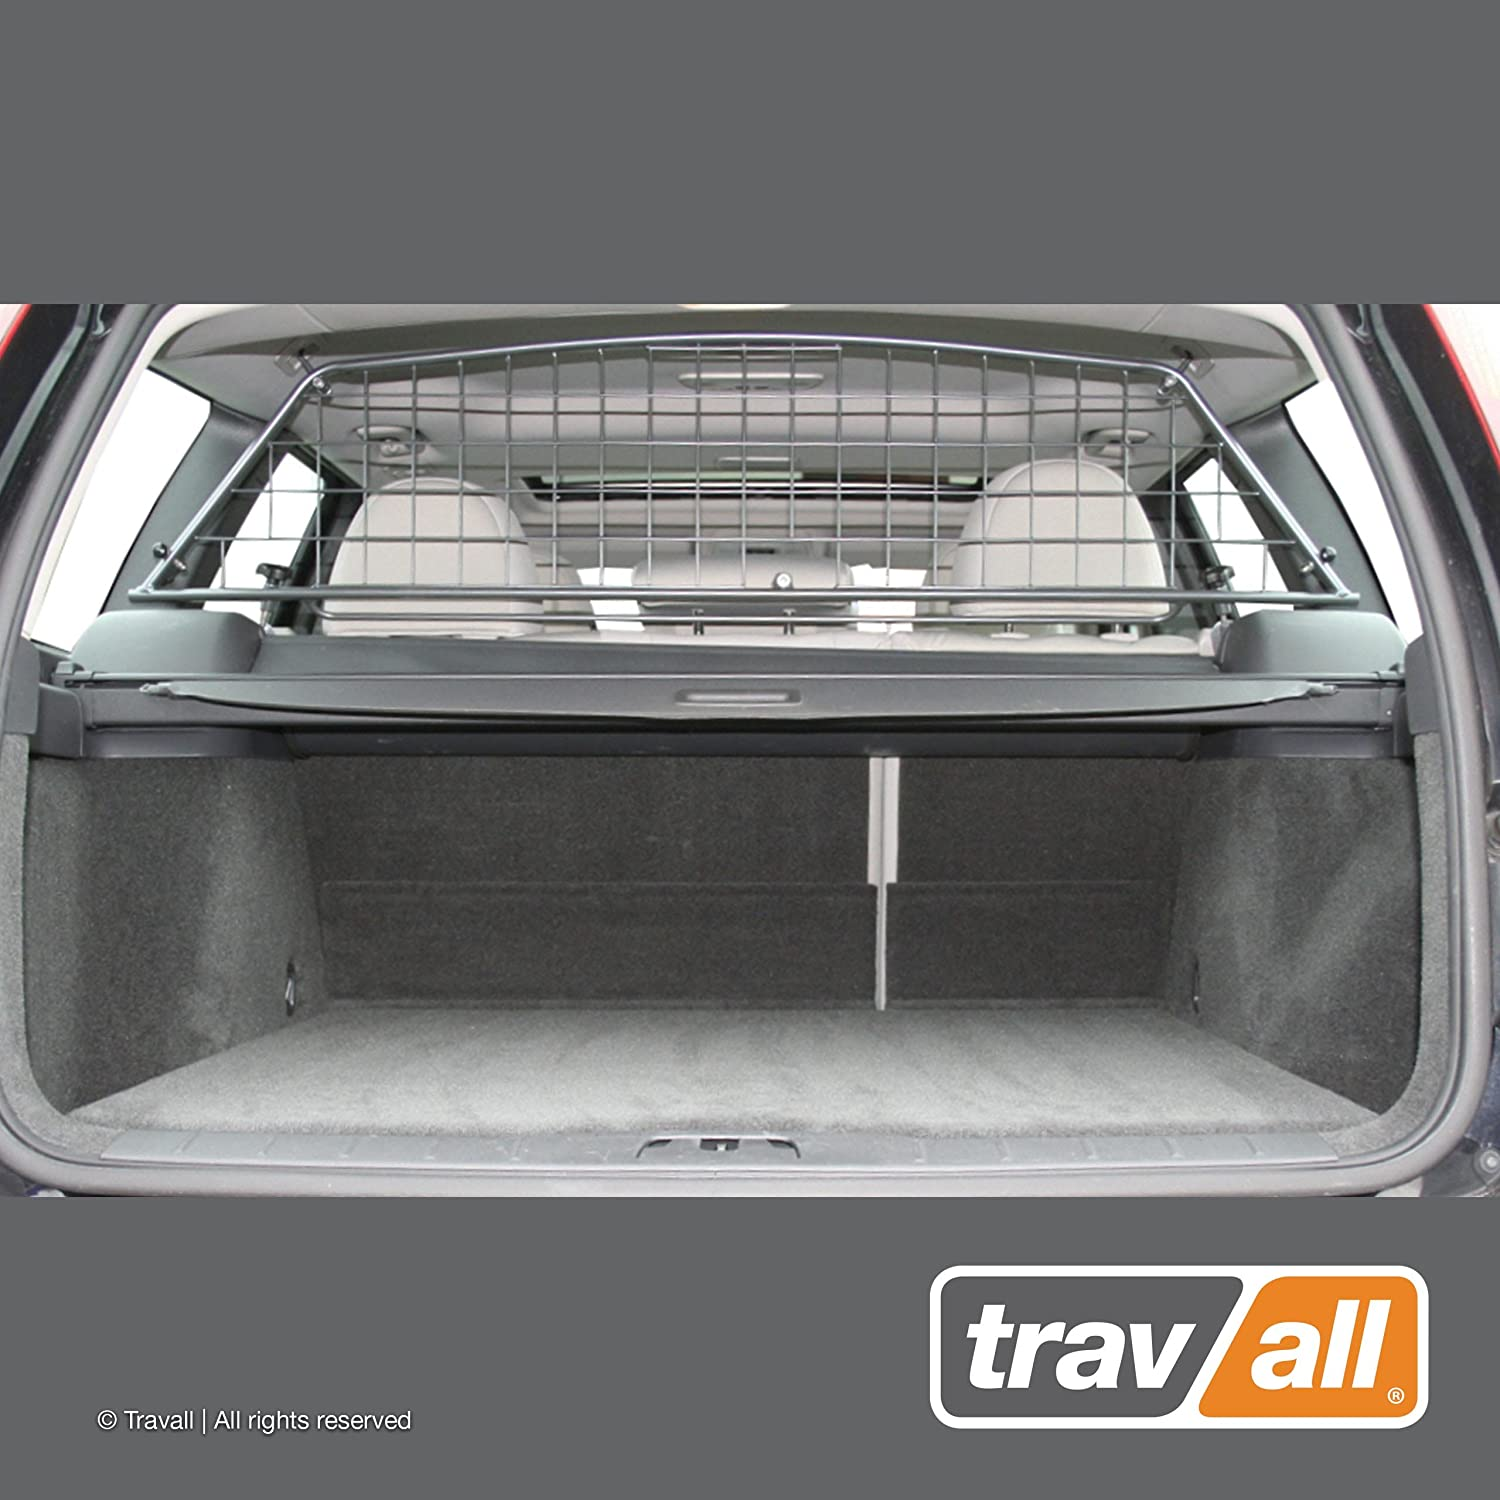 Travall Guard Compatible with Volvo V50 Wagon 2004-2012 TDG1230 – Rattle-Free Steel Pet Barrier